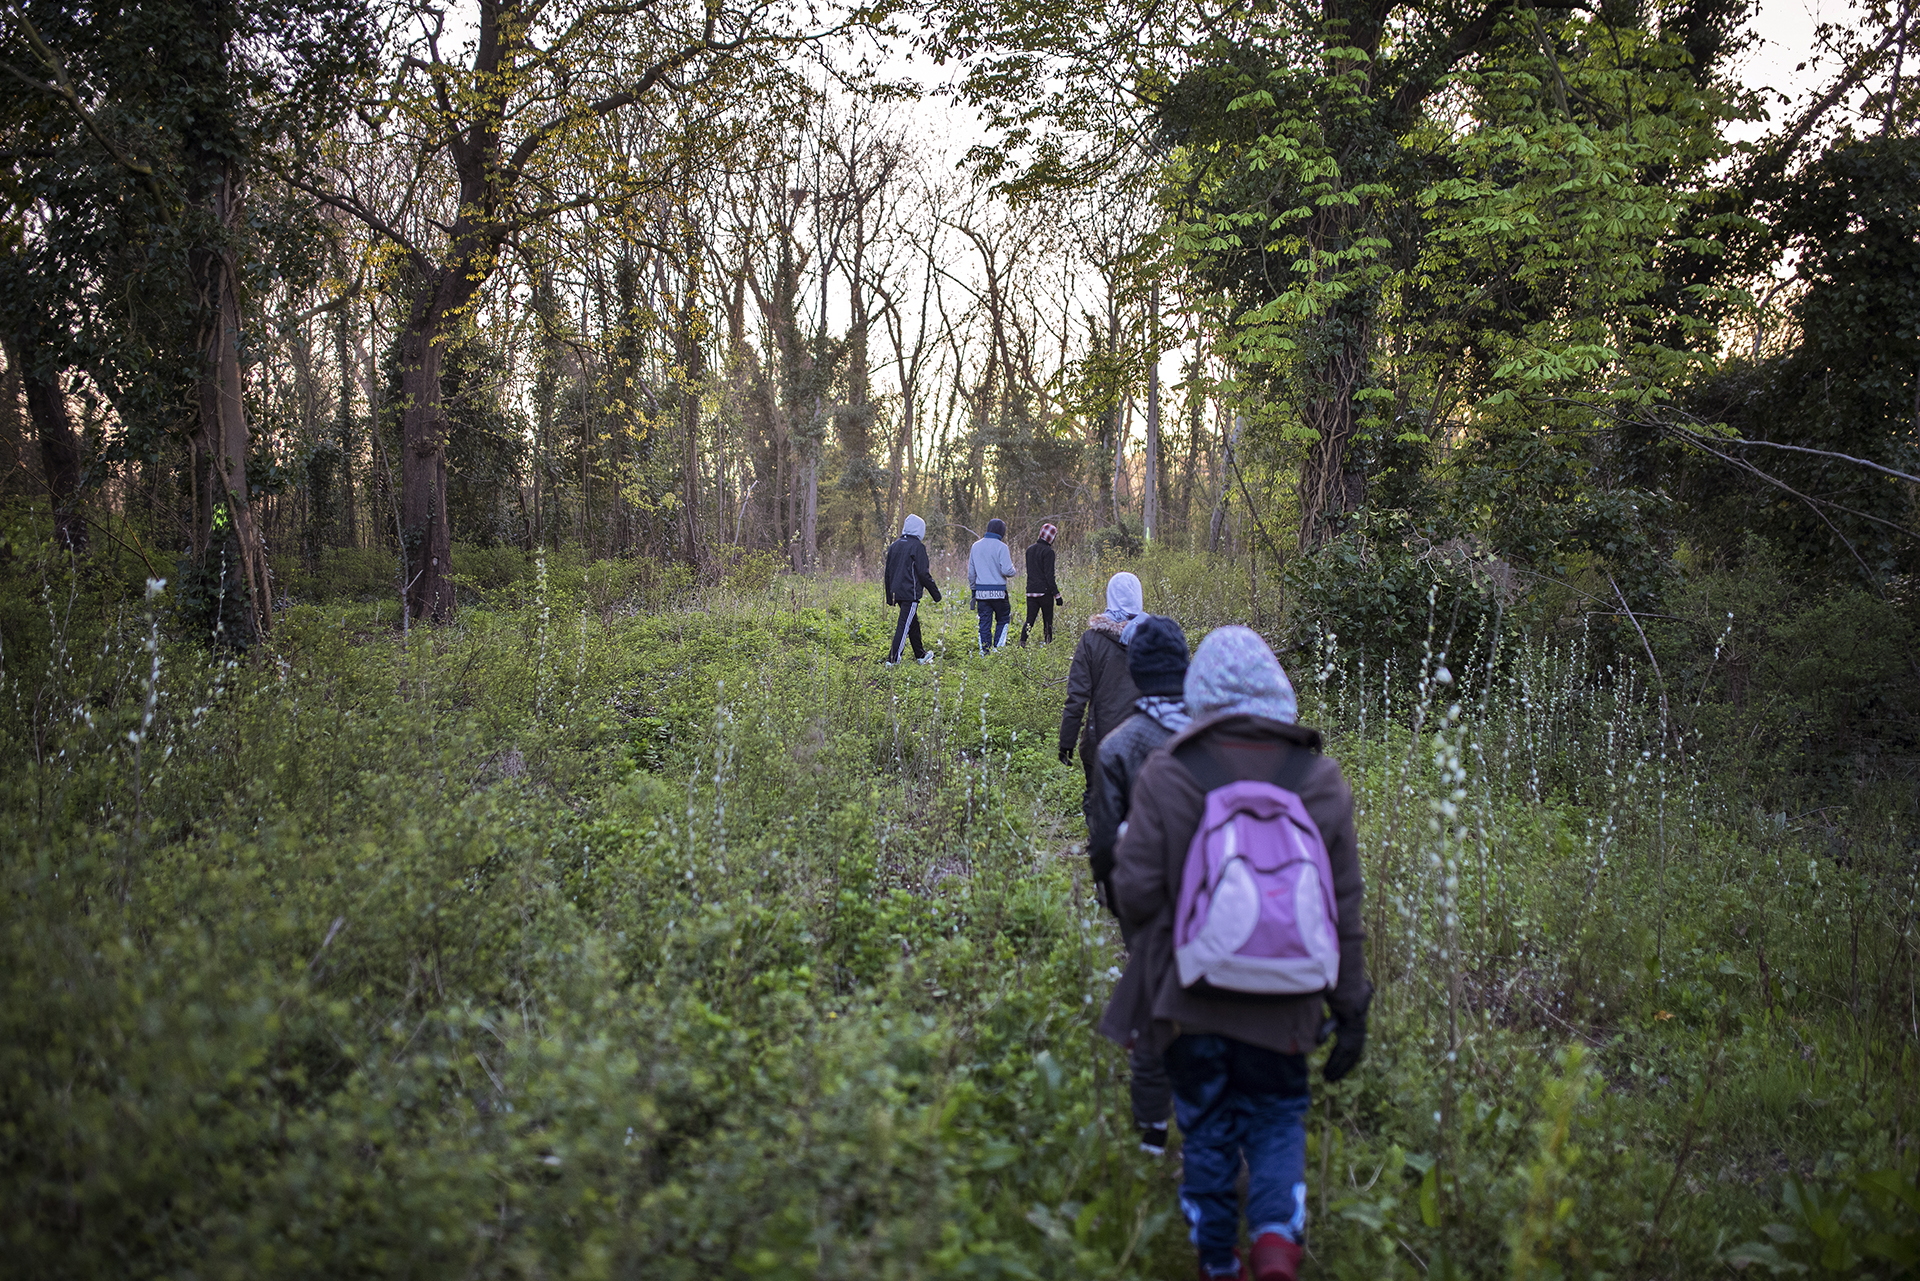 One day in Calais The refugees hiding in the forest